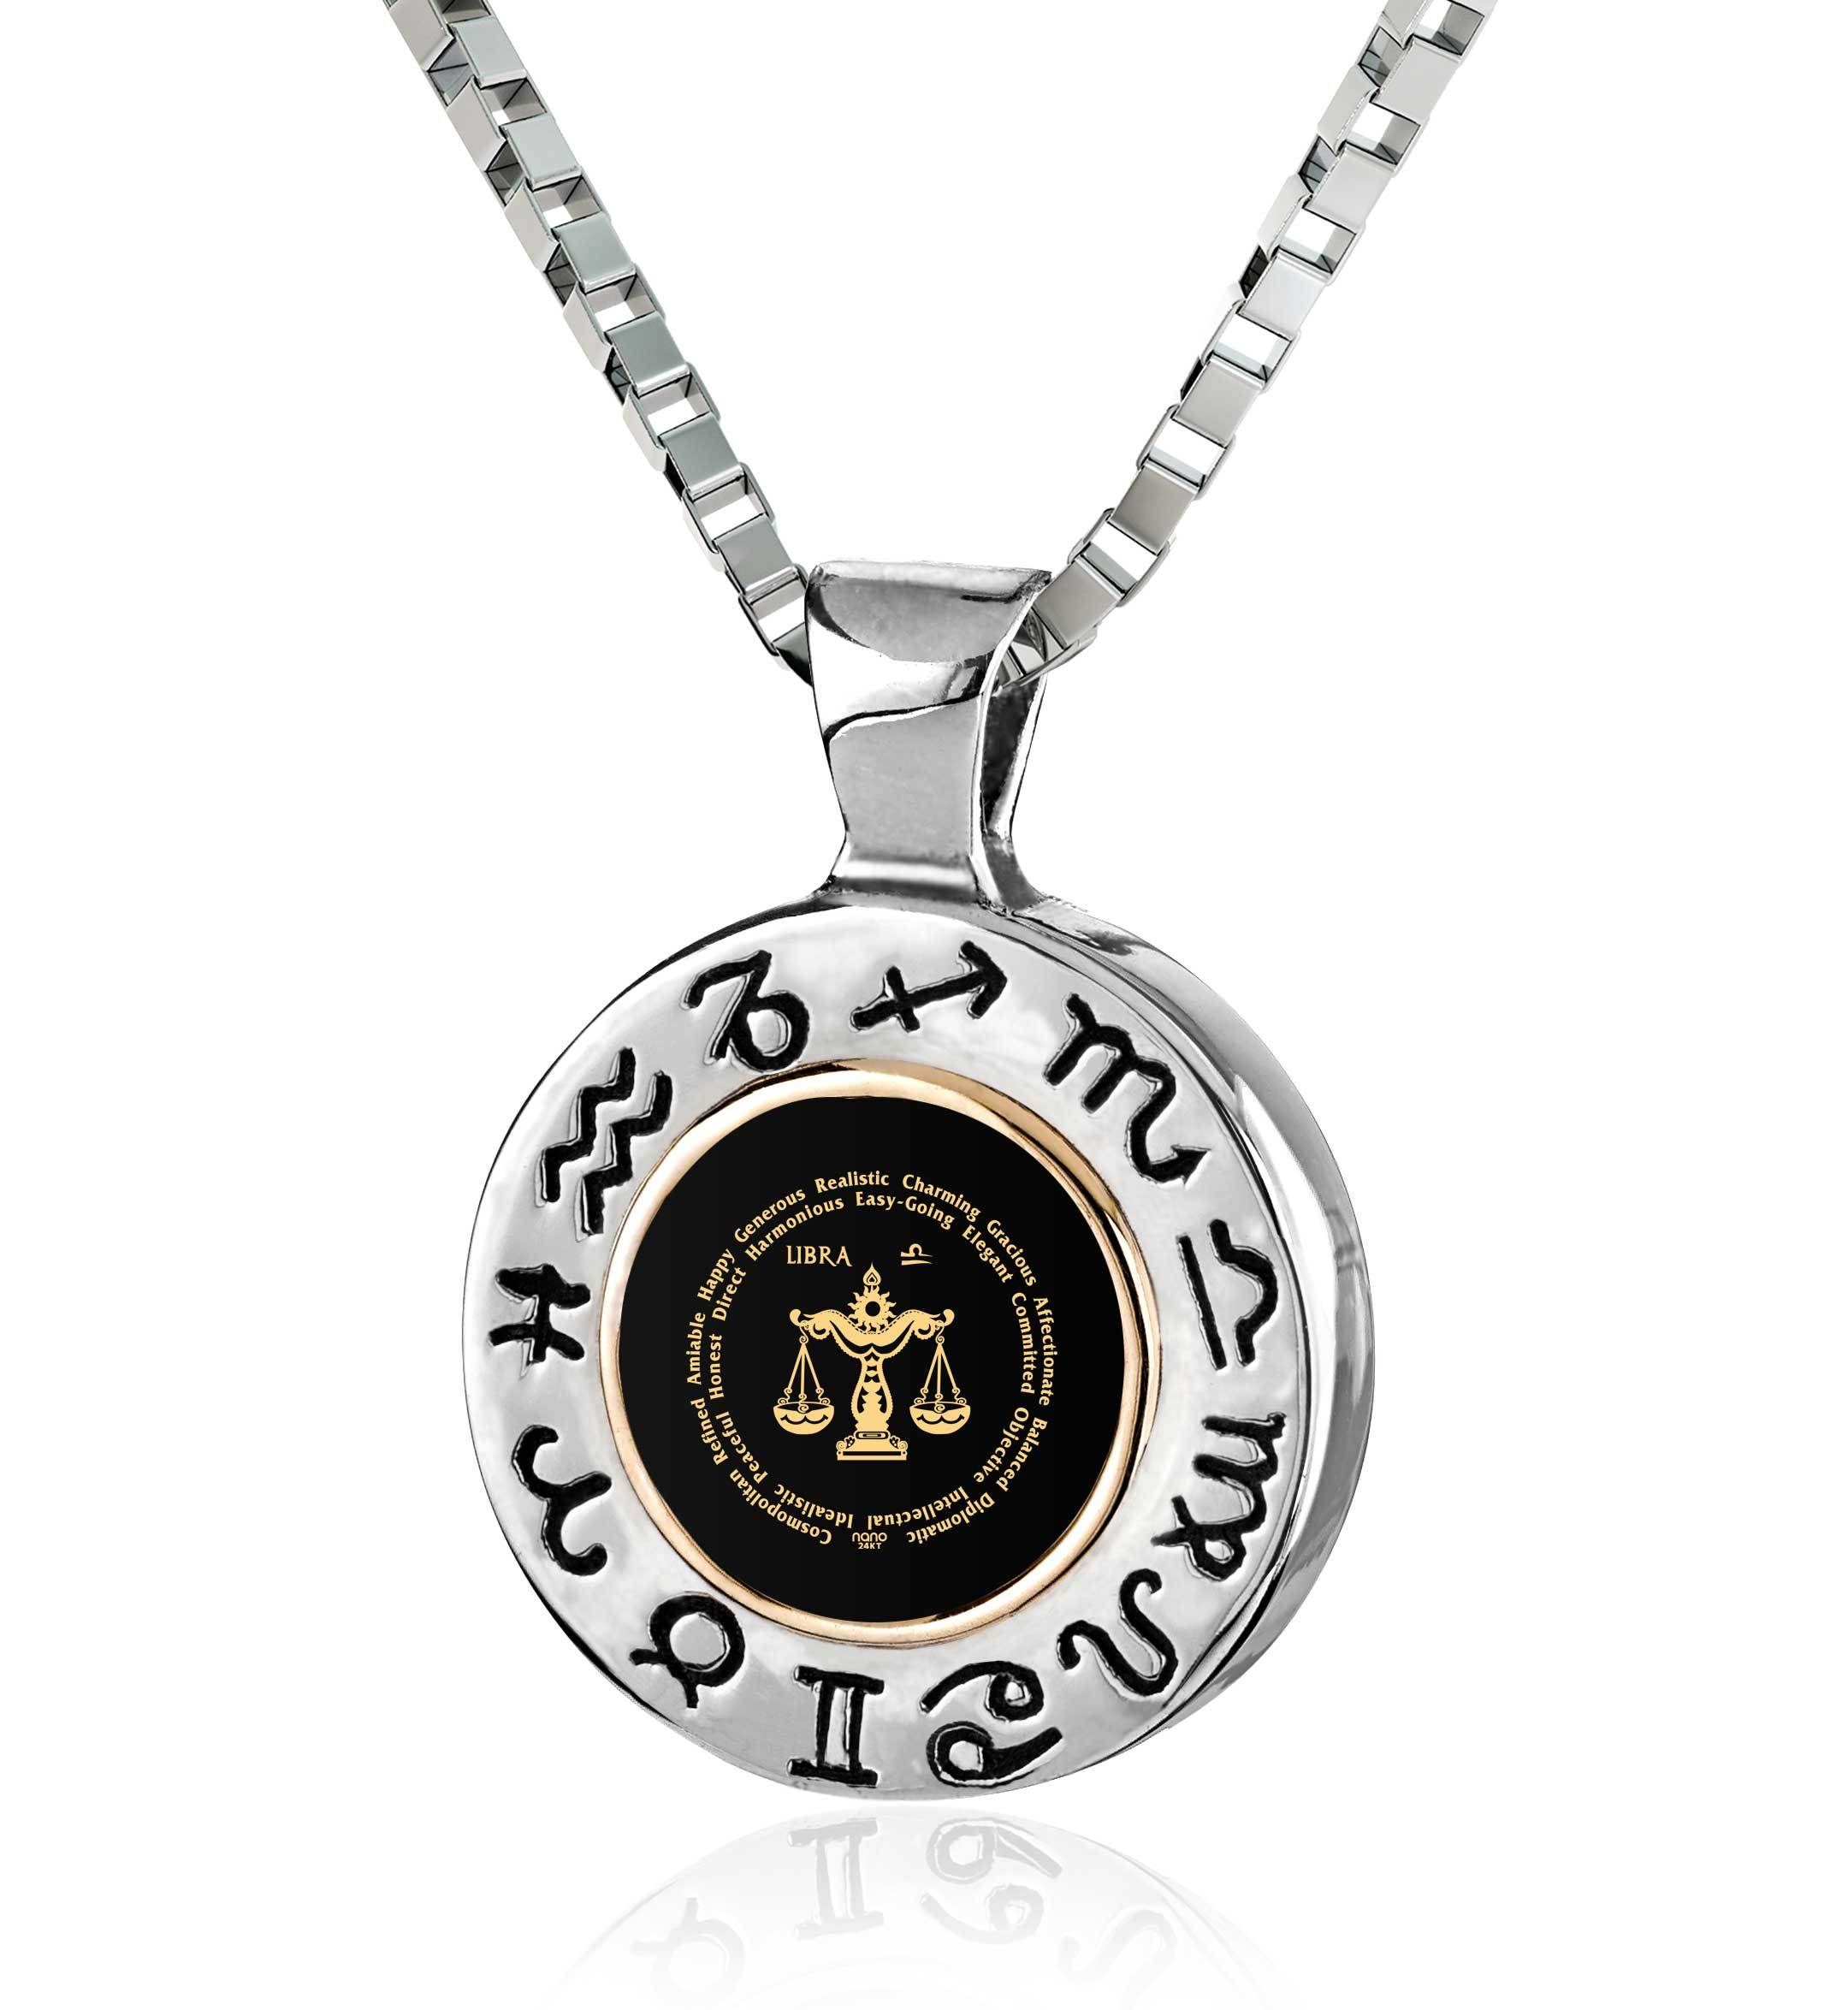 design handcrafted features sterling stylish elegant four clr products with thai necklace details zodiac silver sign cubic this the libra necklaces zirconia katsaya cn and lucky artisan clover paired